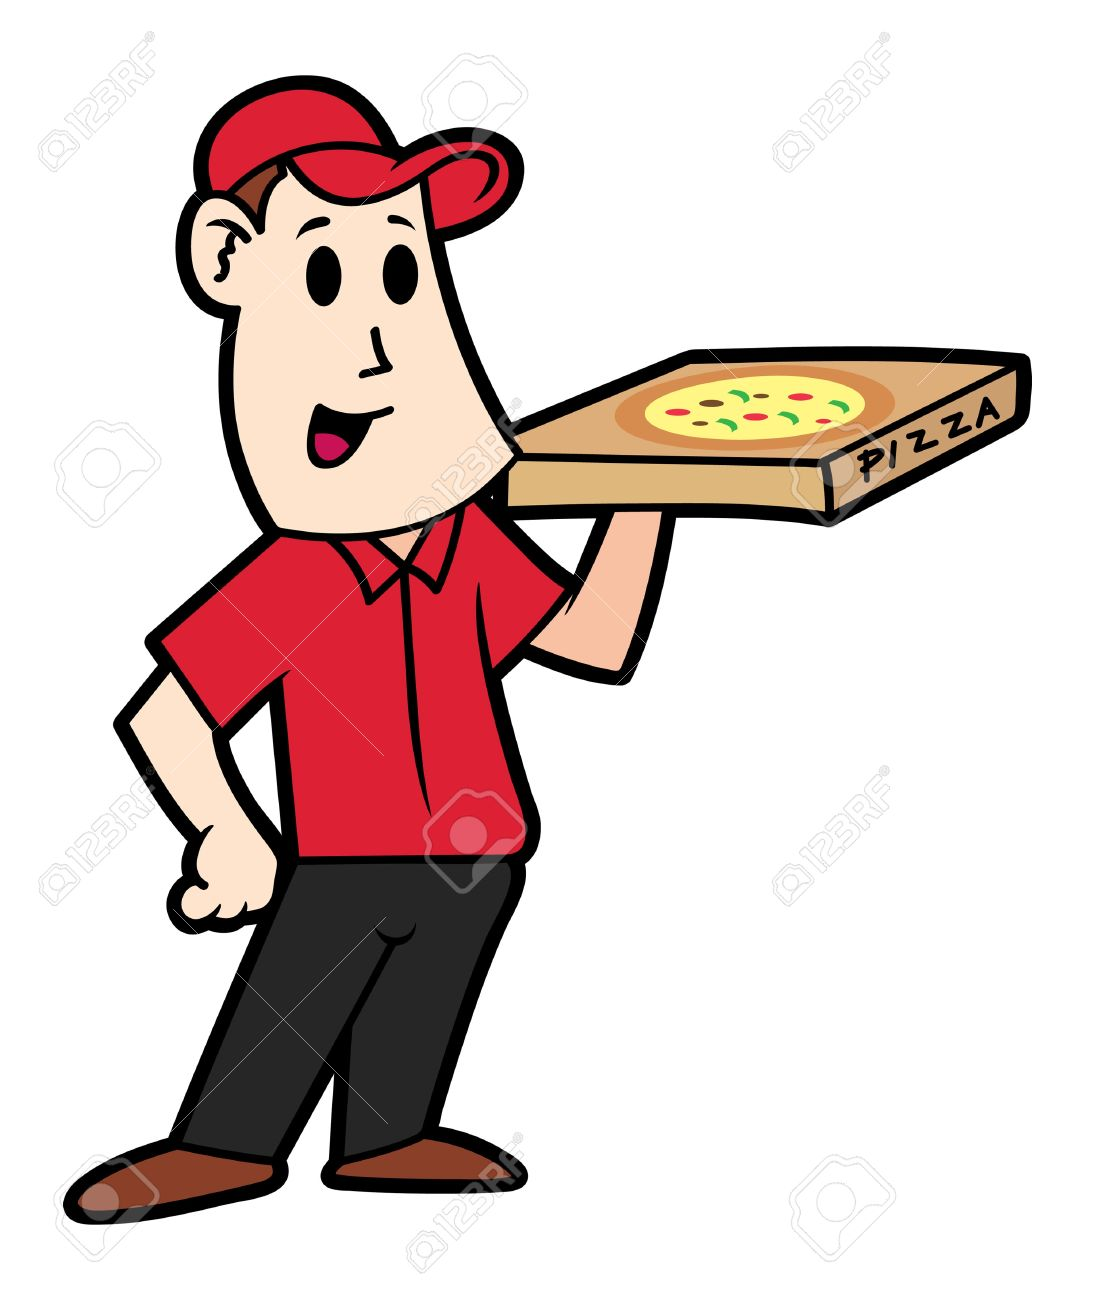 1095x1300 Cartoon Pizza Man Collection